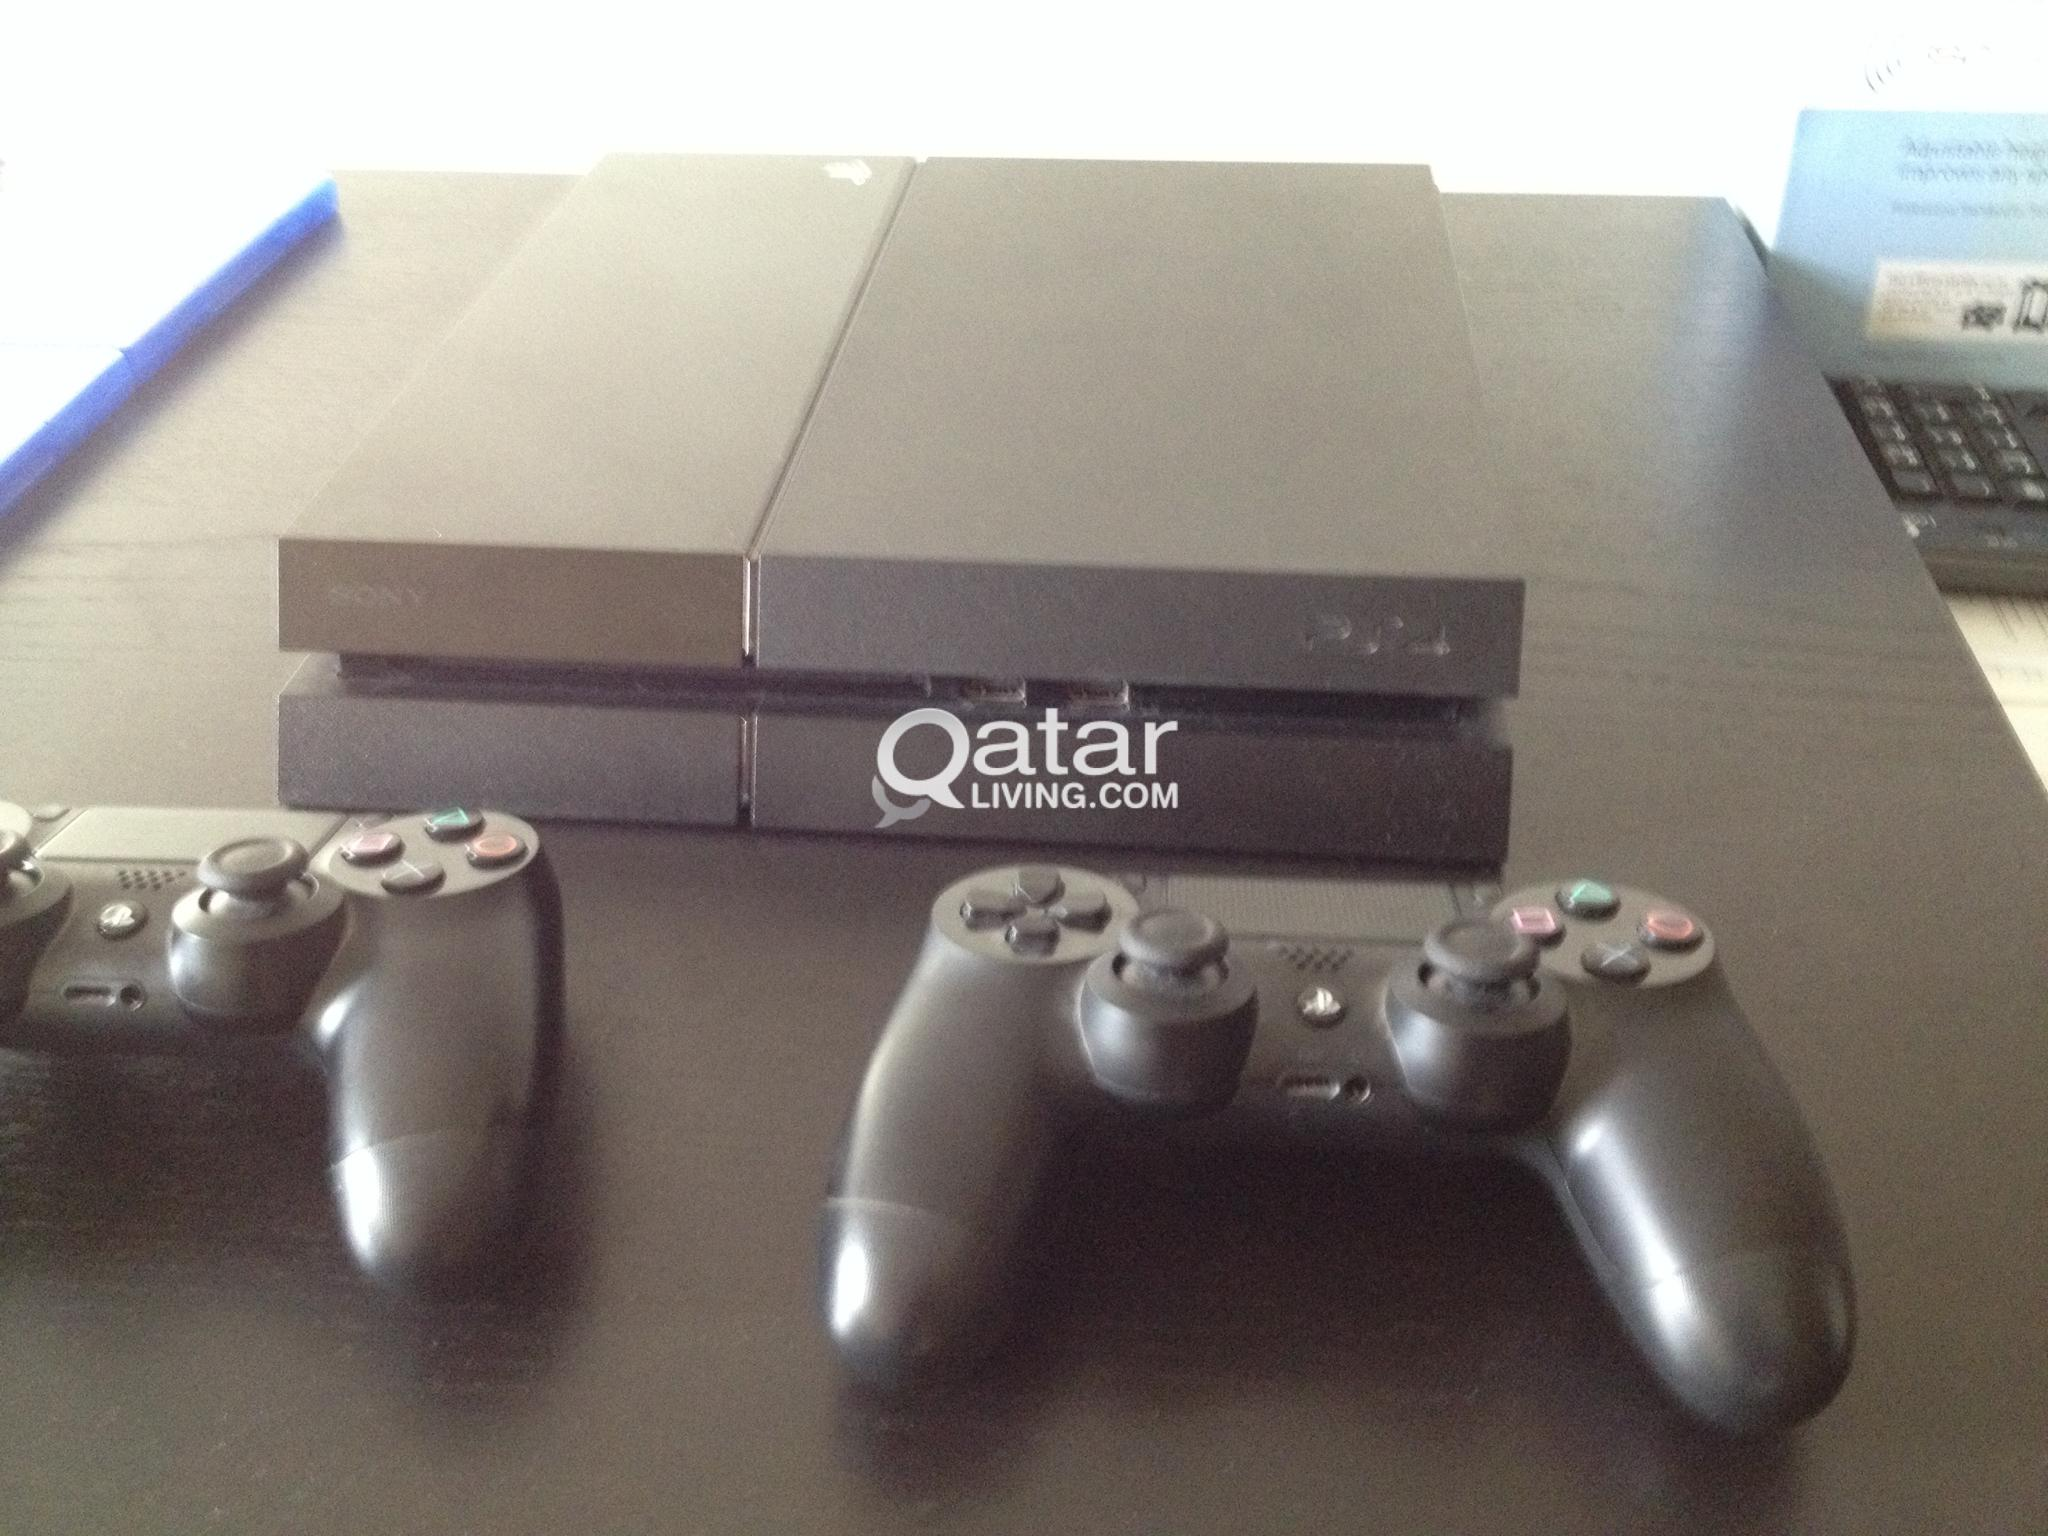 PS4 + 2 controllers + 9 games | Qatar Living